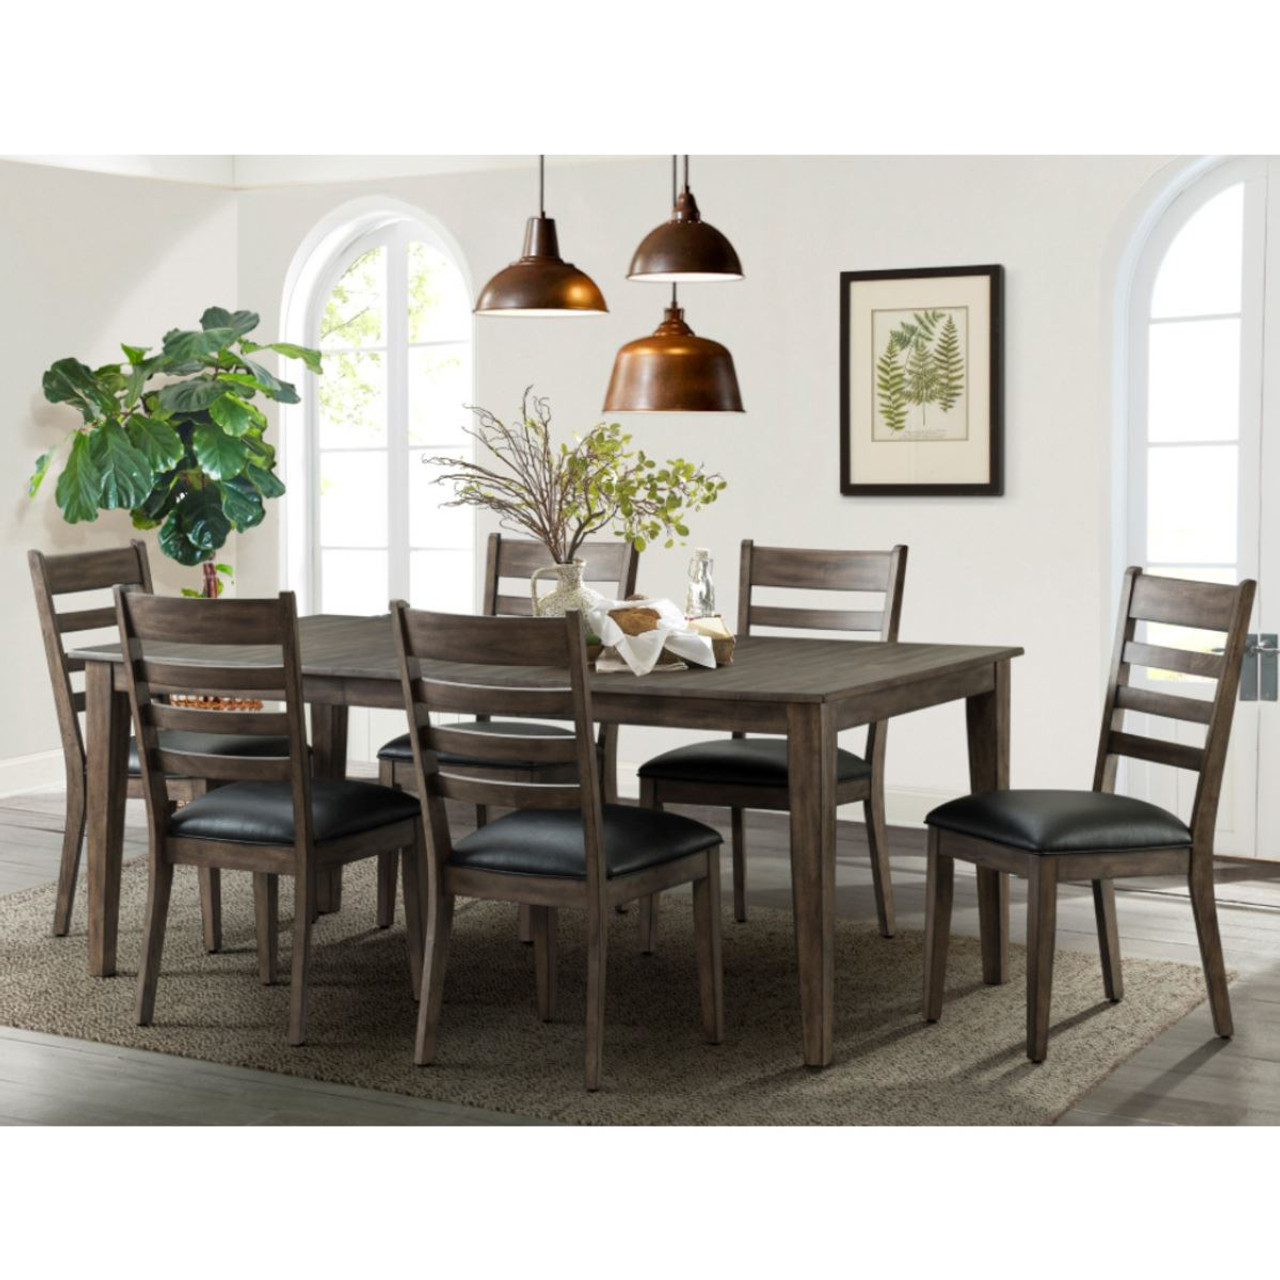 Imagio Home Solid Wood Extending Dining Room Table 6 Chairs Magar Solutions